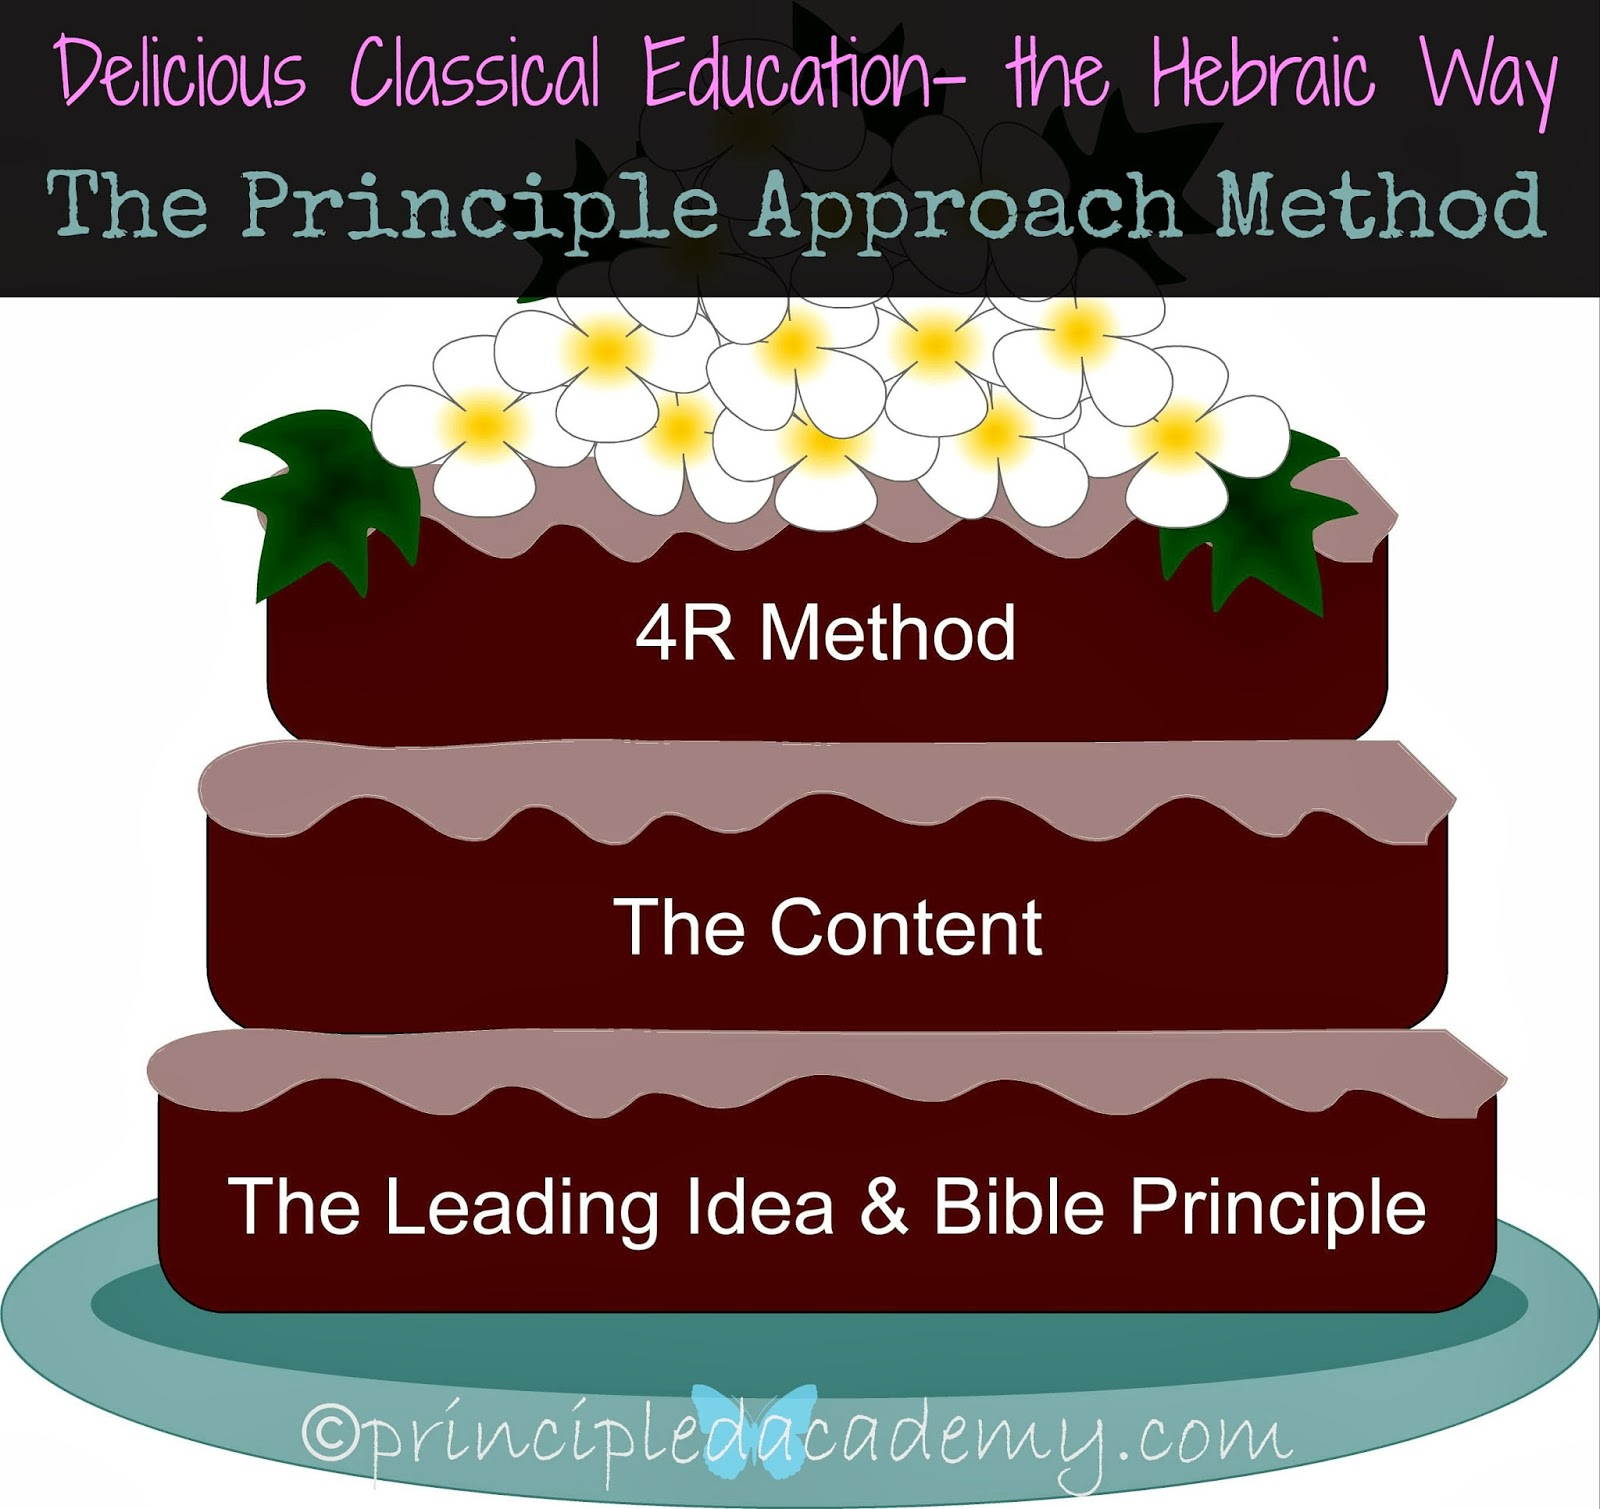 Principled Academy, Principle Approach, The Principled Academy, Classical Education, Biblical Classical Education